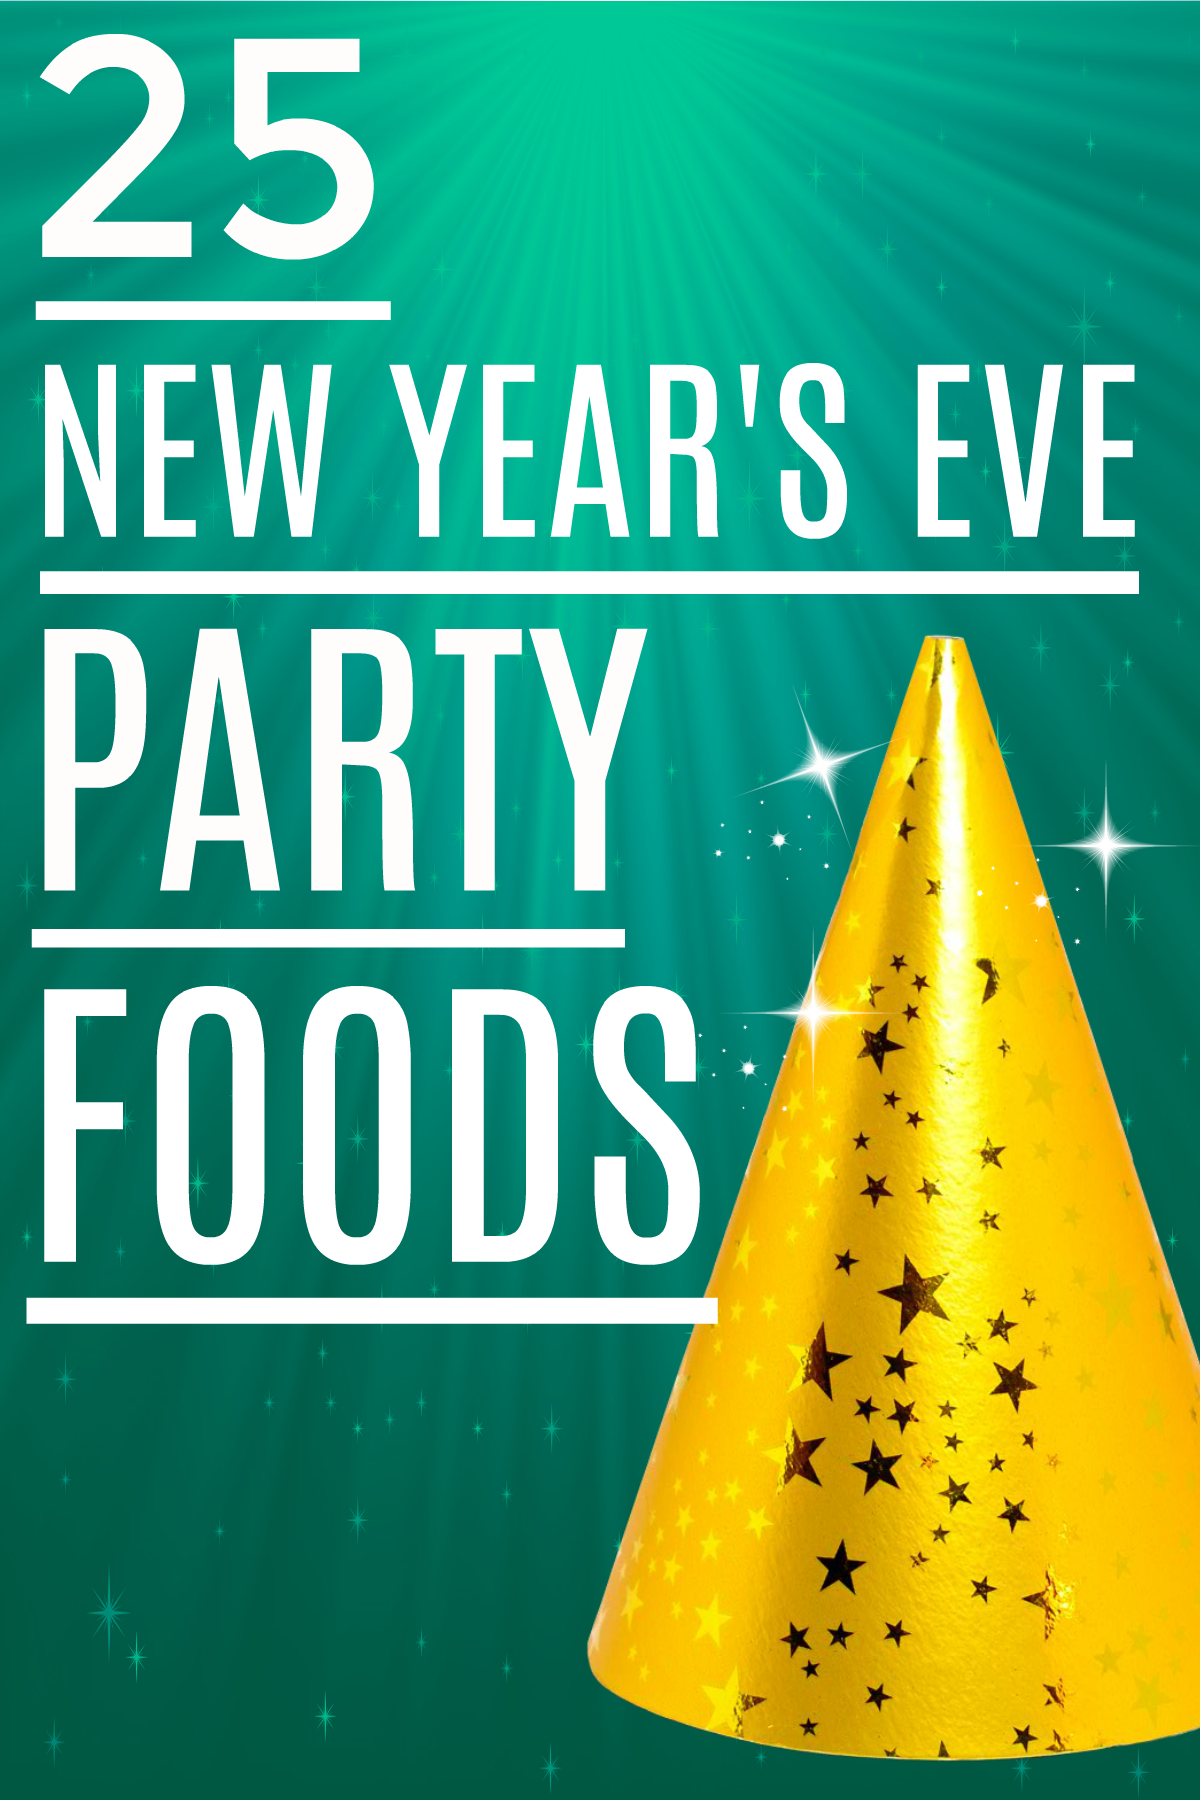 25 New Years Eve Party Foods